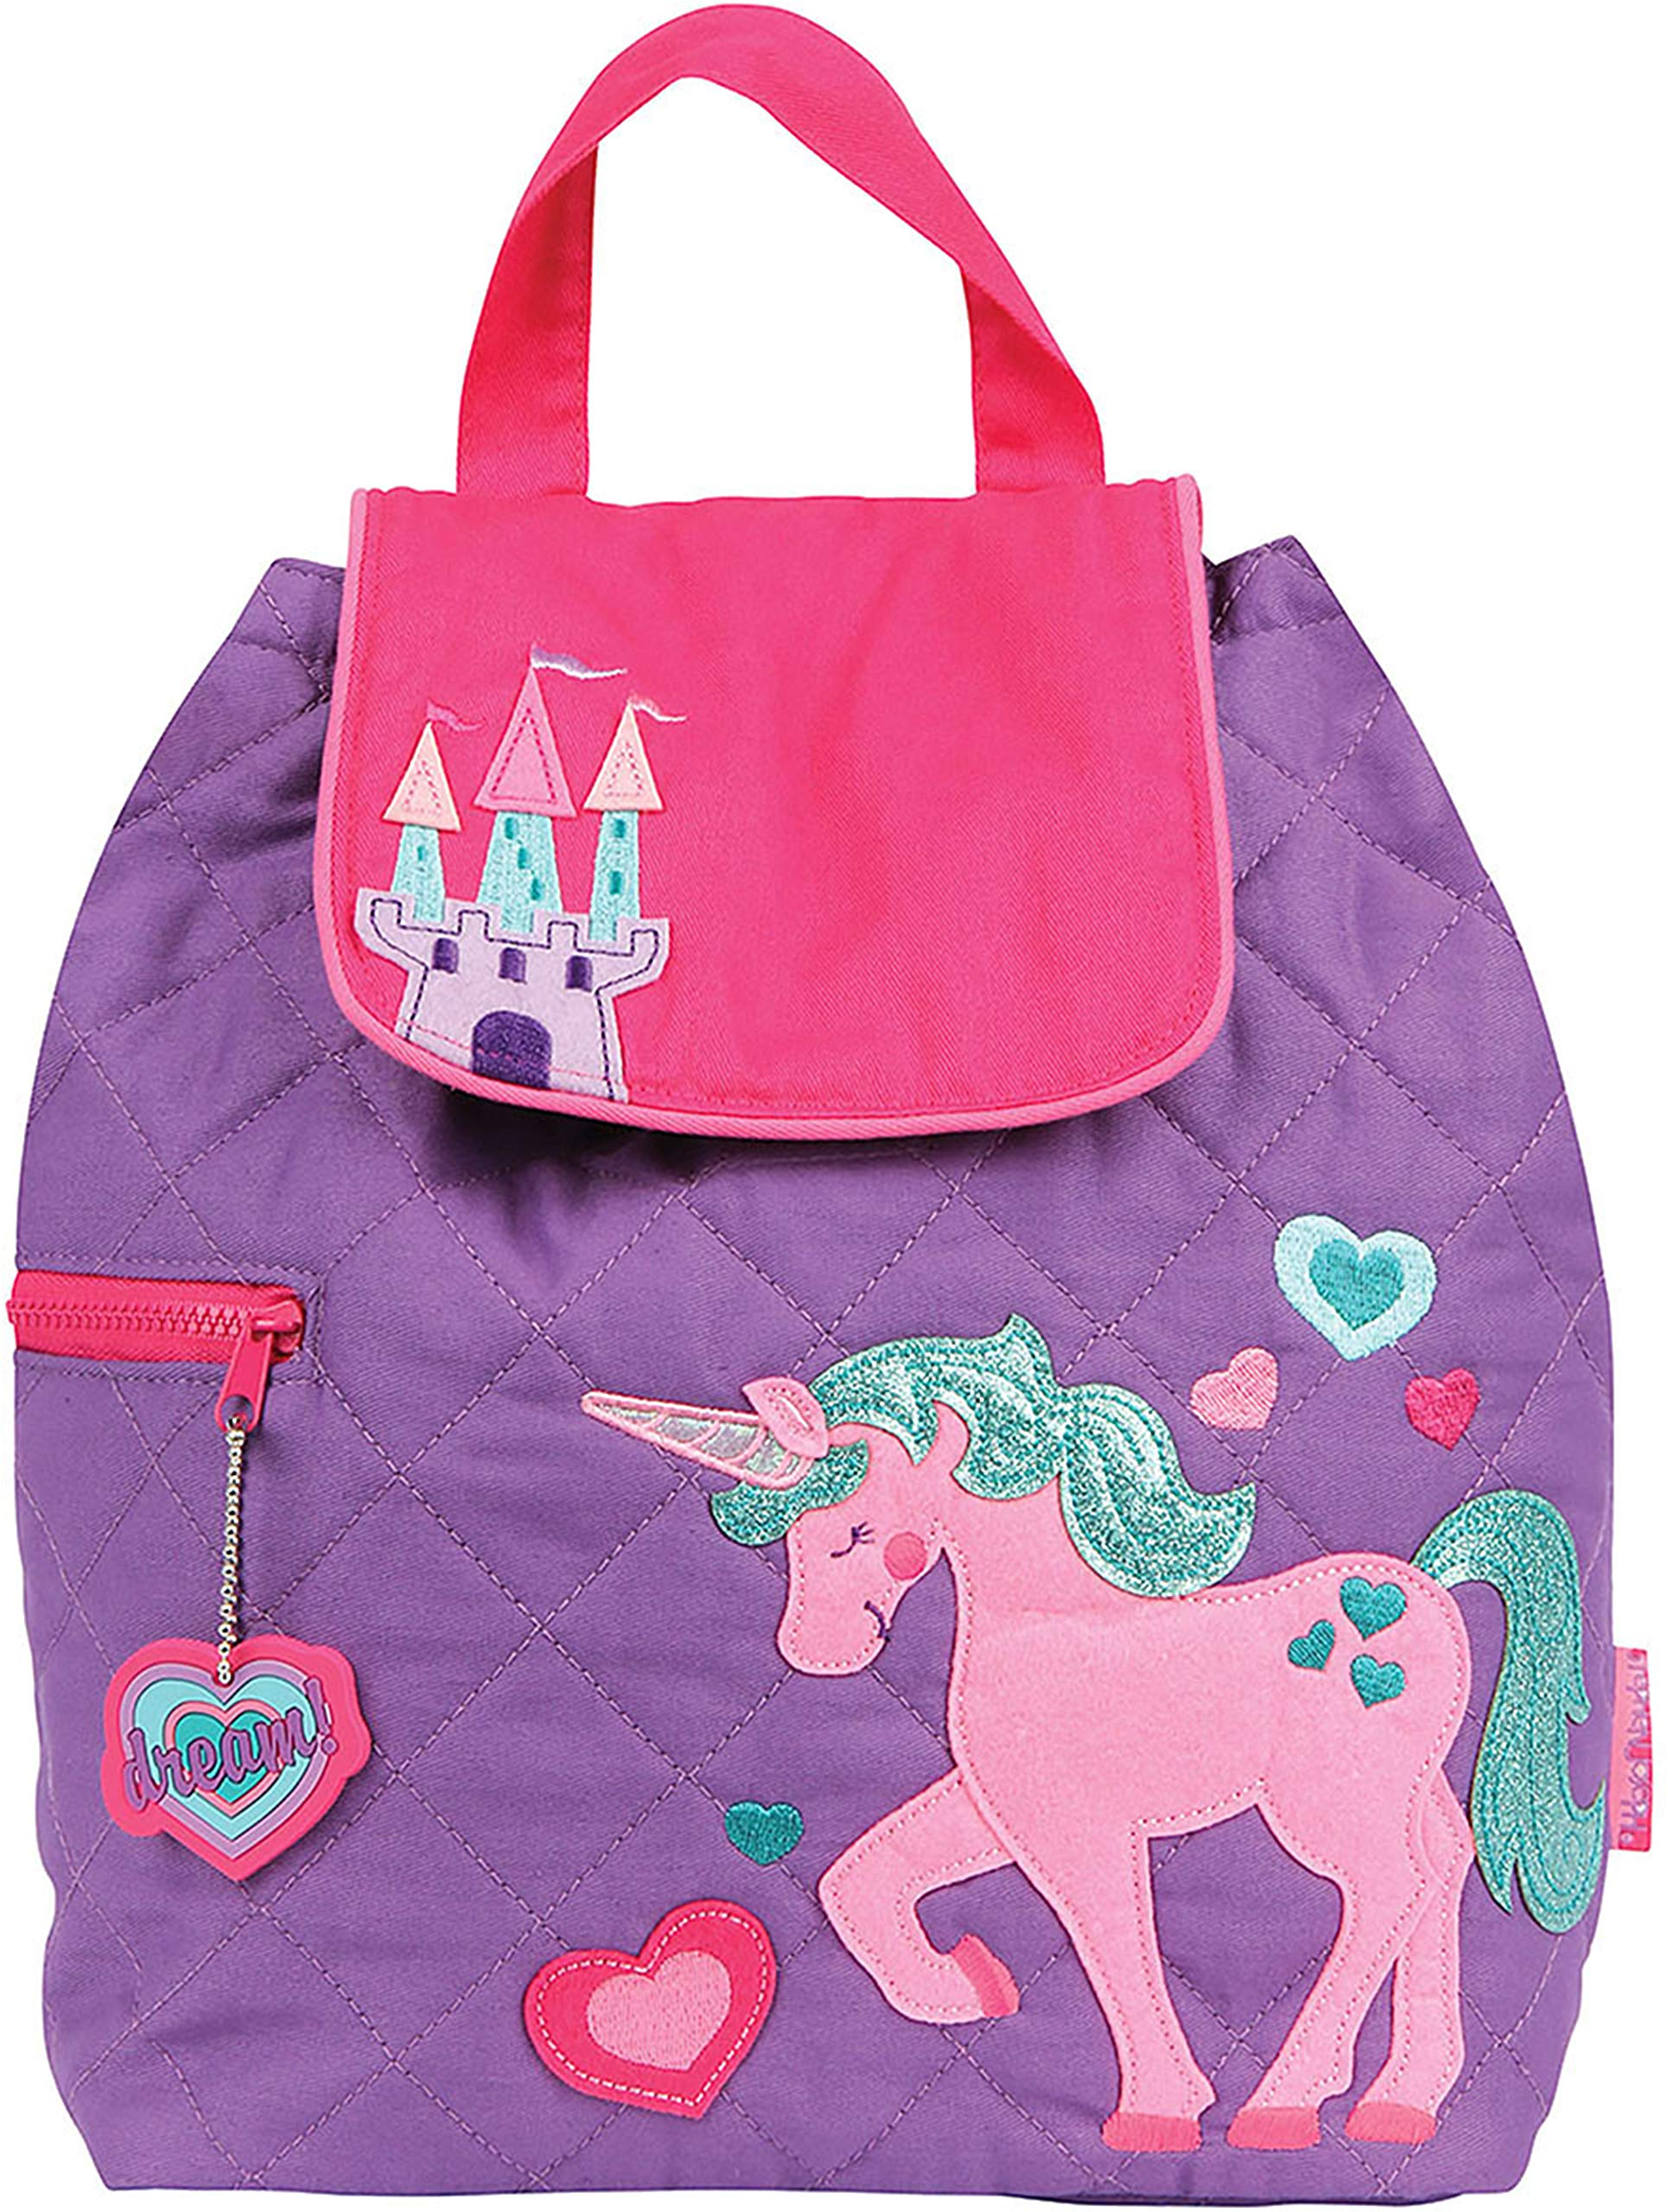 Stephen Joseph Quilted Backpack, Unicorn, One size